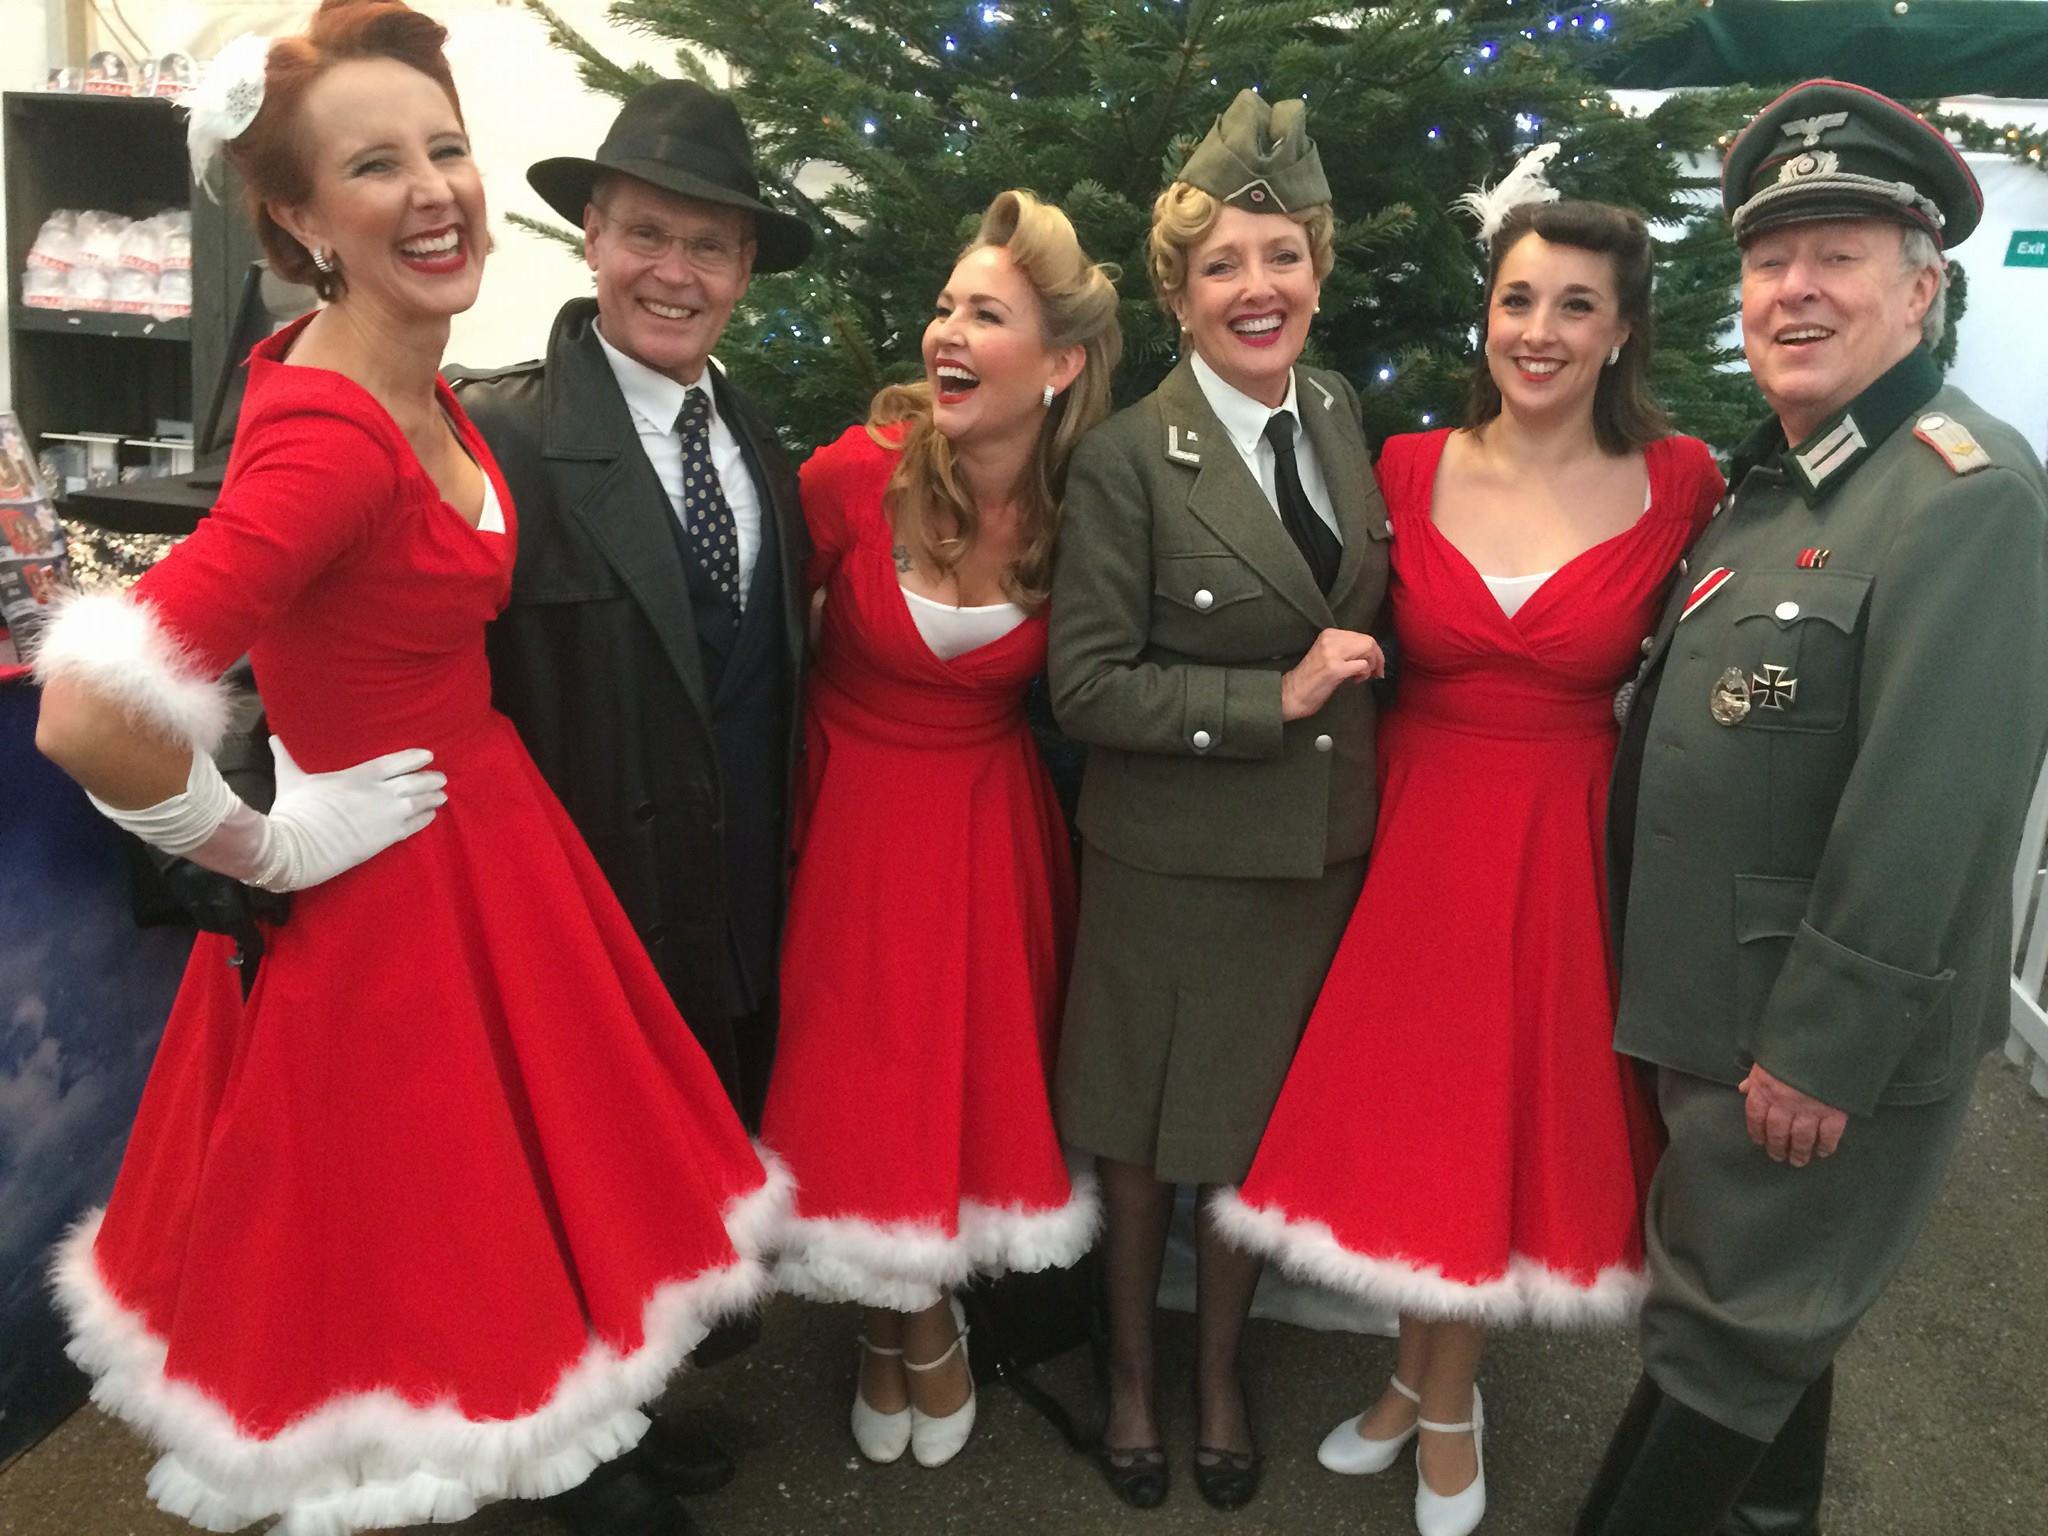 UK BAND-Polka Dots with soldiers at WW Event